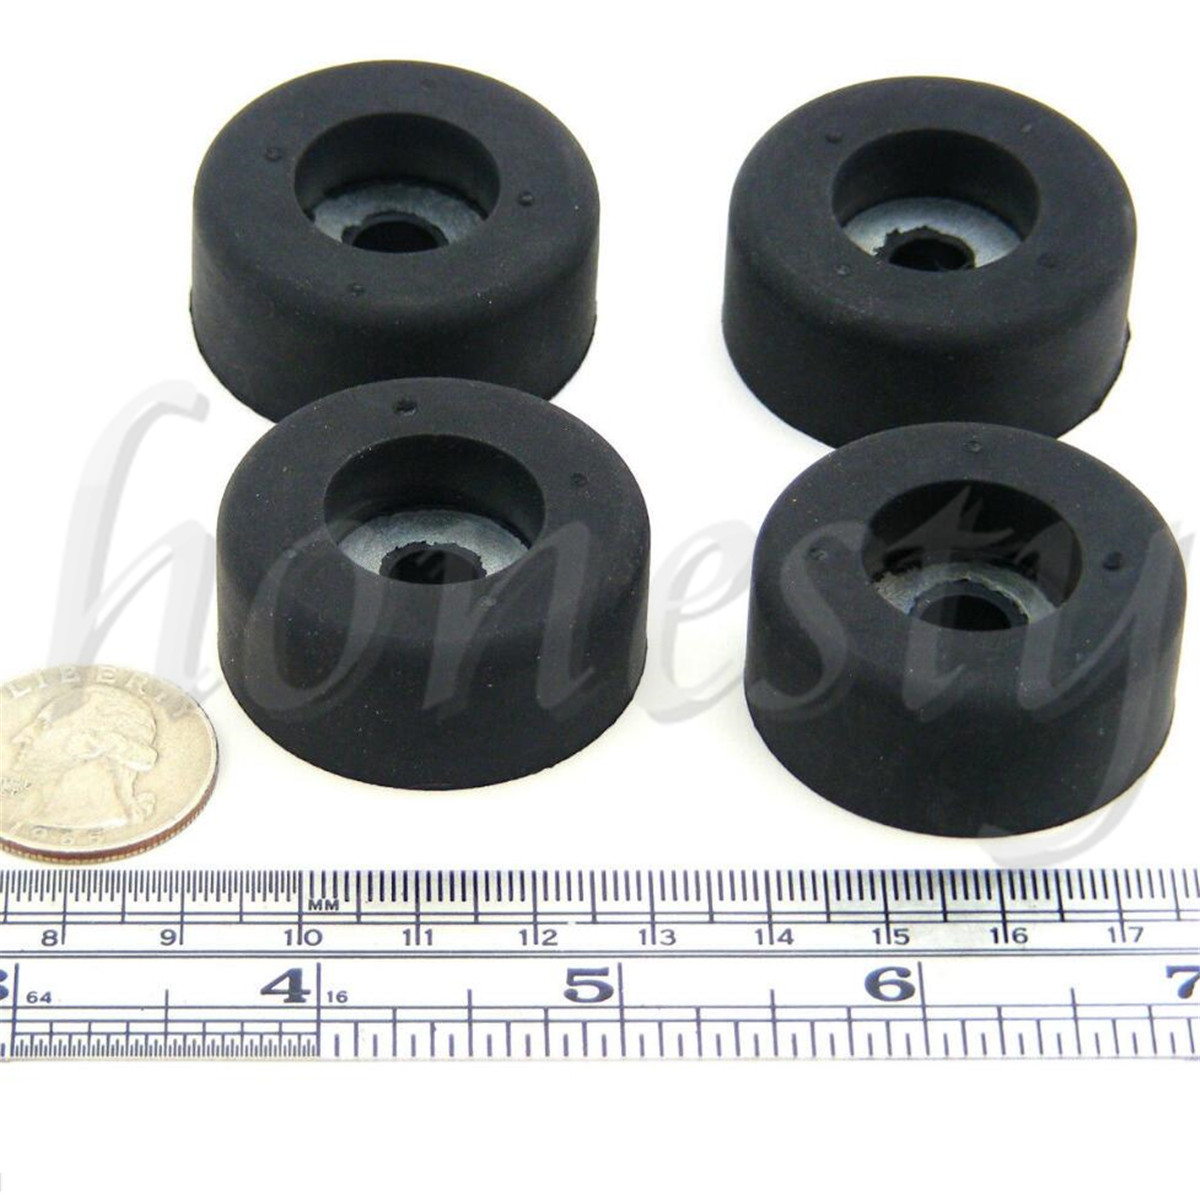 4Pcs Rubber Bumpers Embedded Washer Feet Pad Instrument Speaker HoldZT